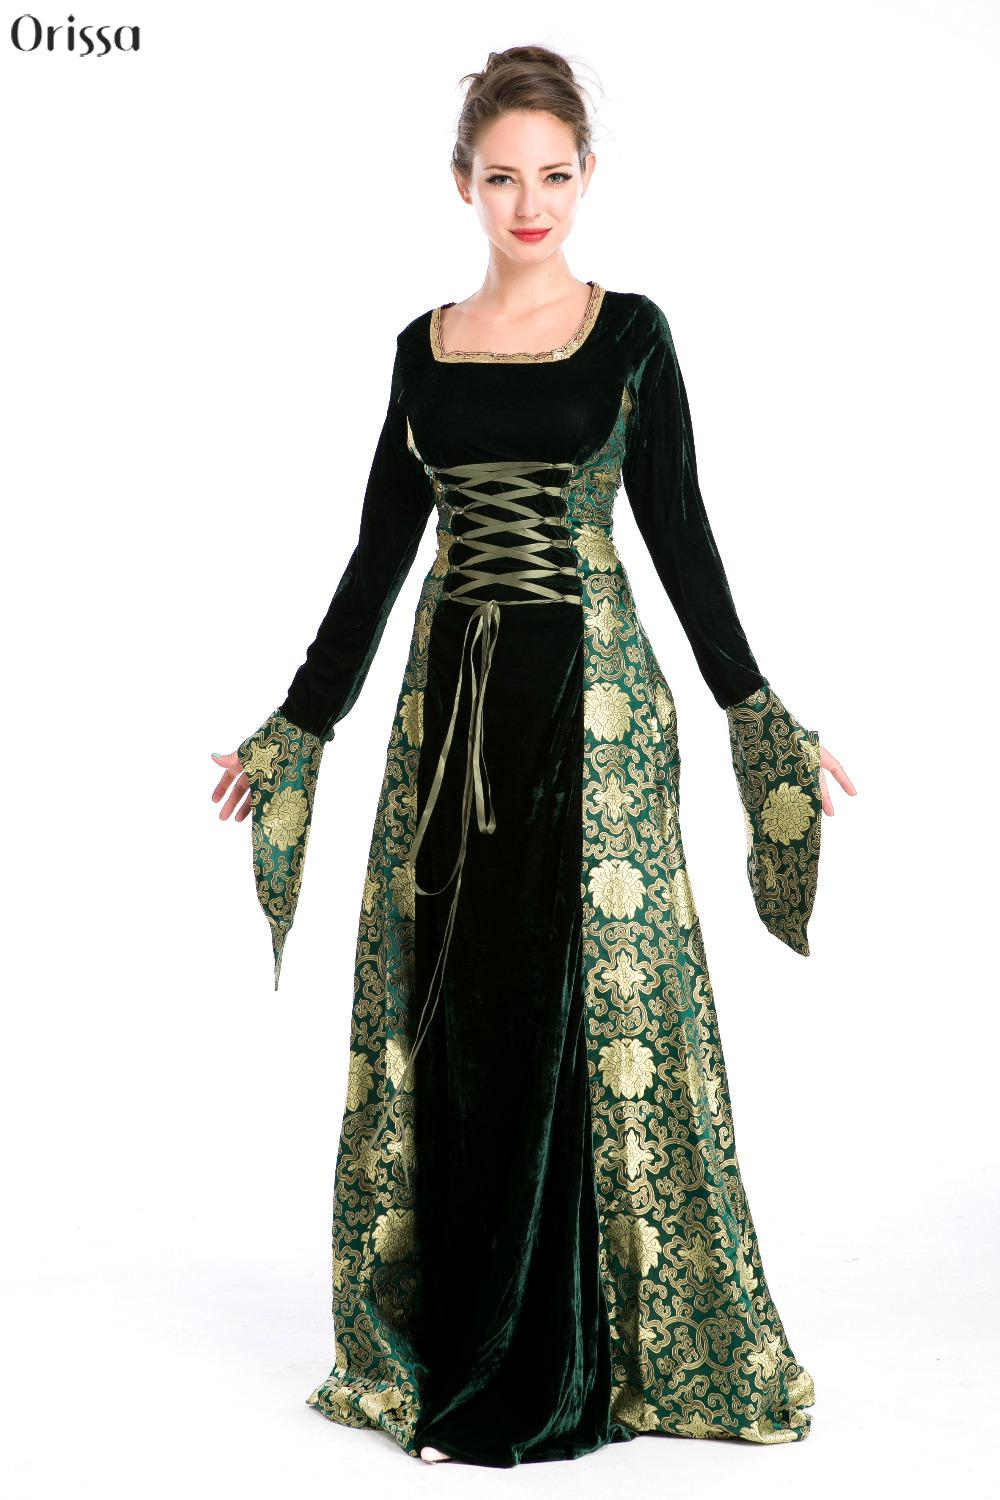 Cosplay Women Period Costumes Gowns Halloween Costumes For -4627